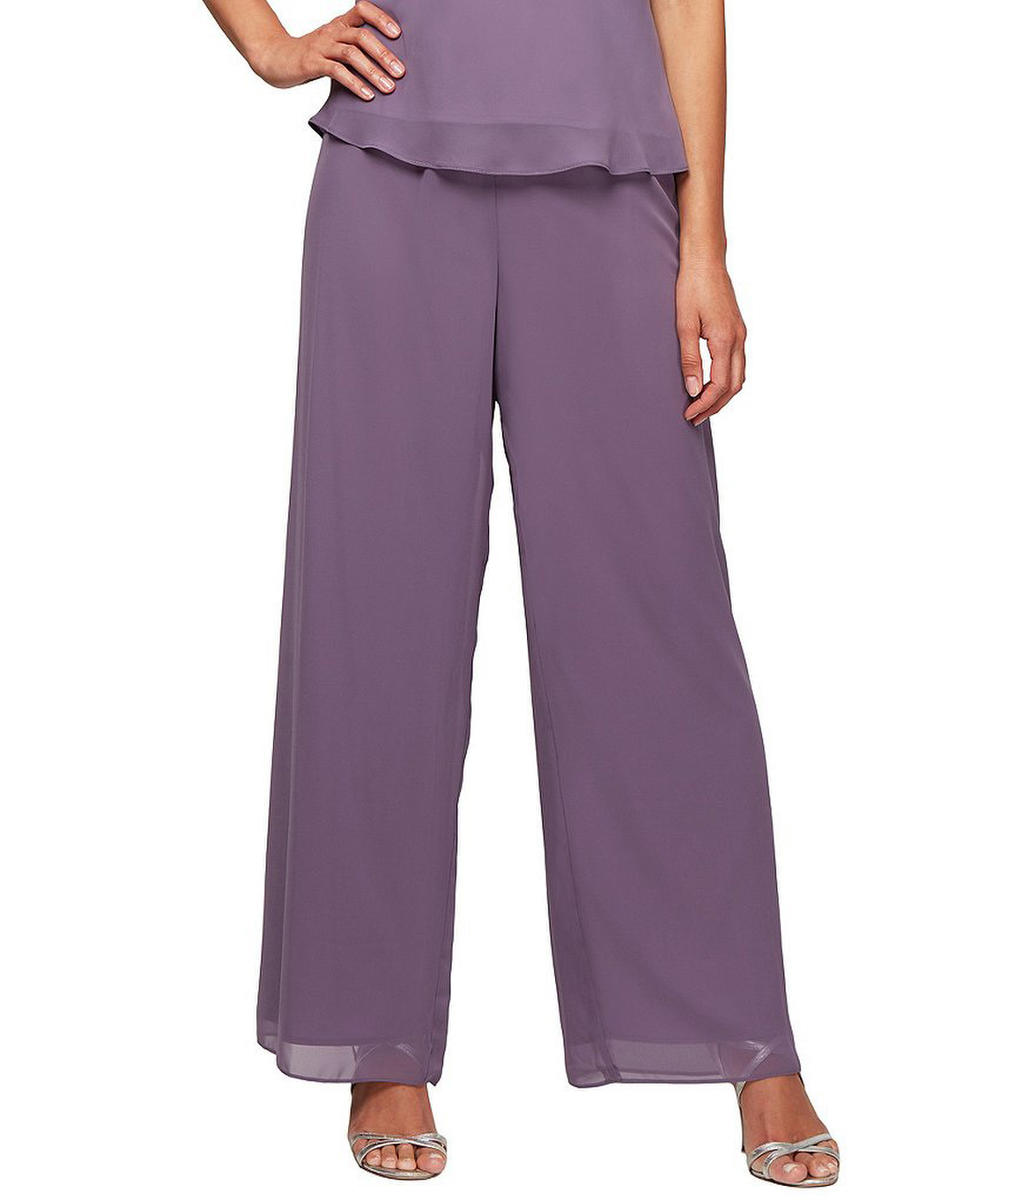 ALEX APPAREL GROUP INC - Chiffon Pants